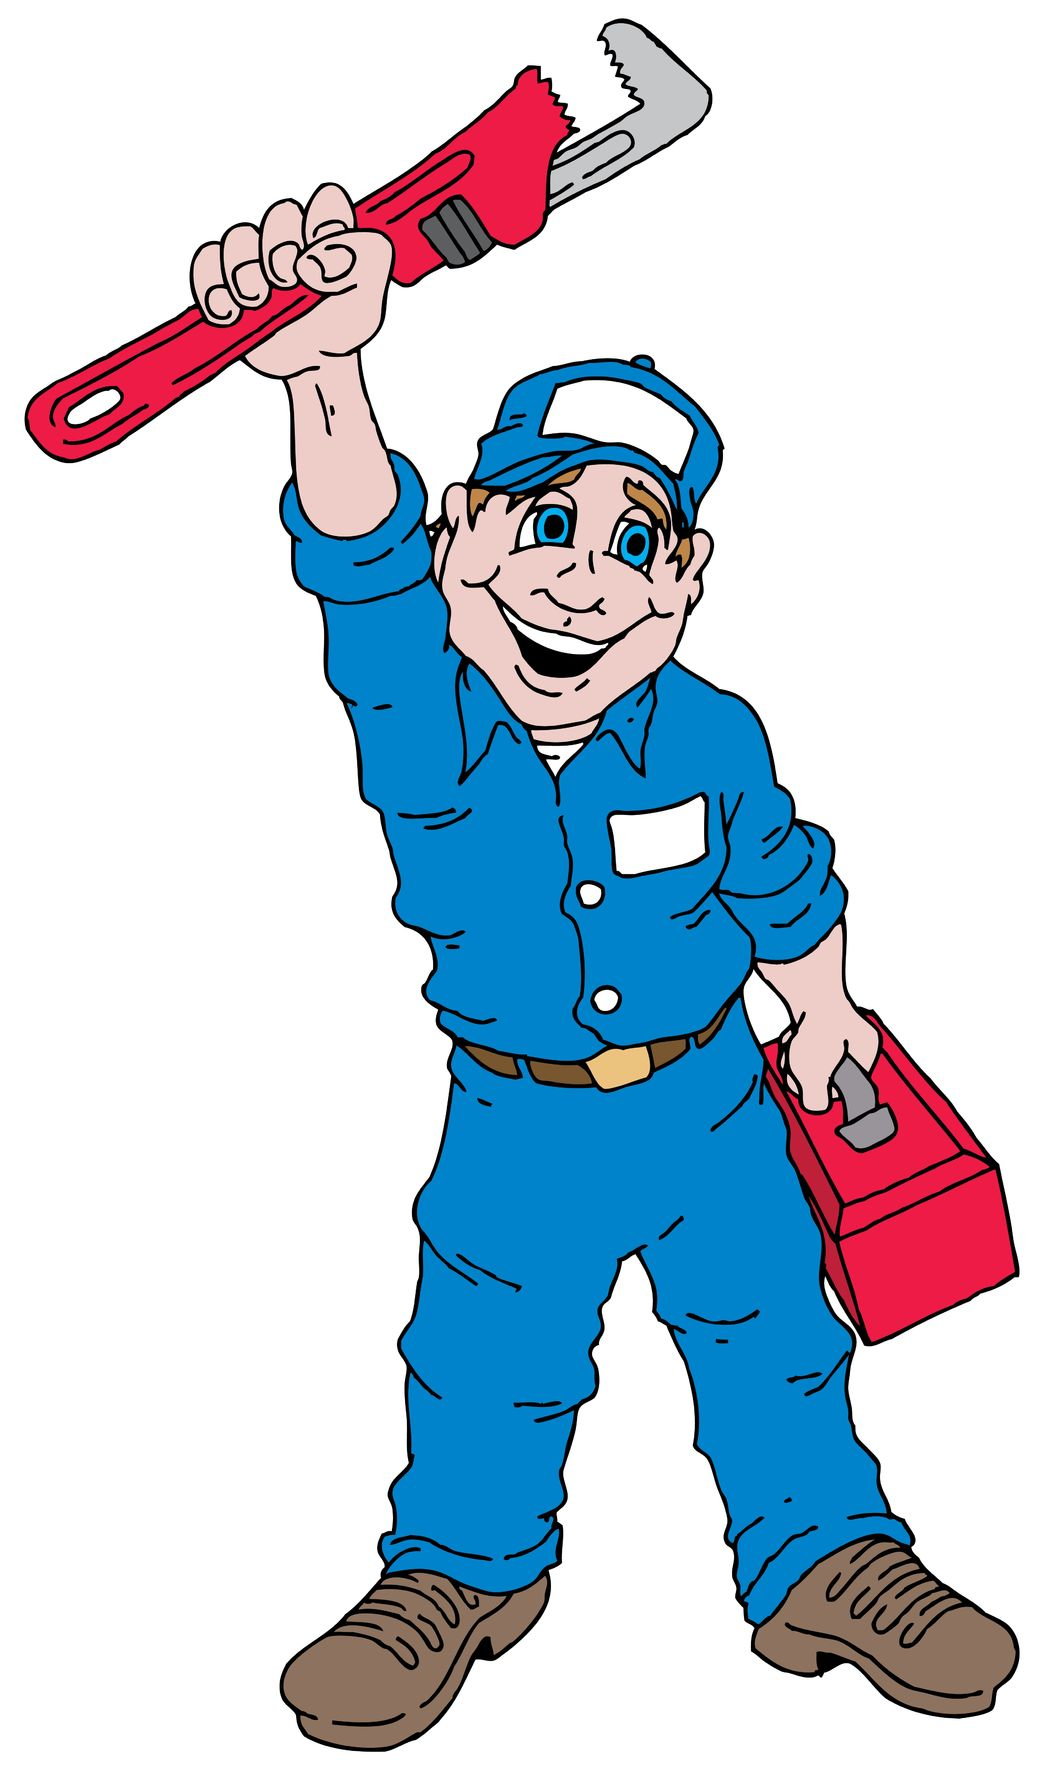 Plumber clipart plumbing heating. Free cliparts download clip